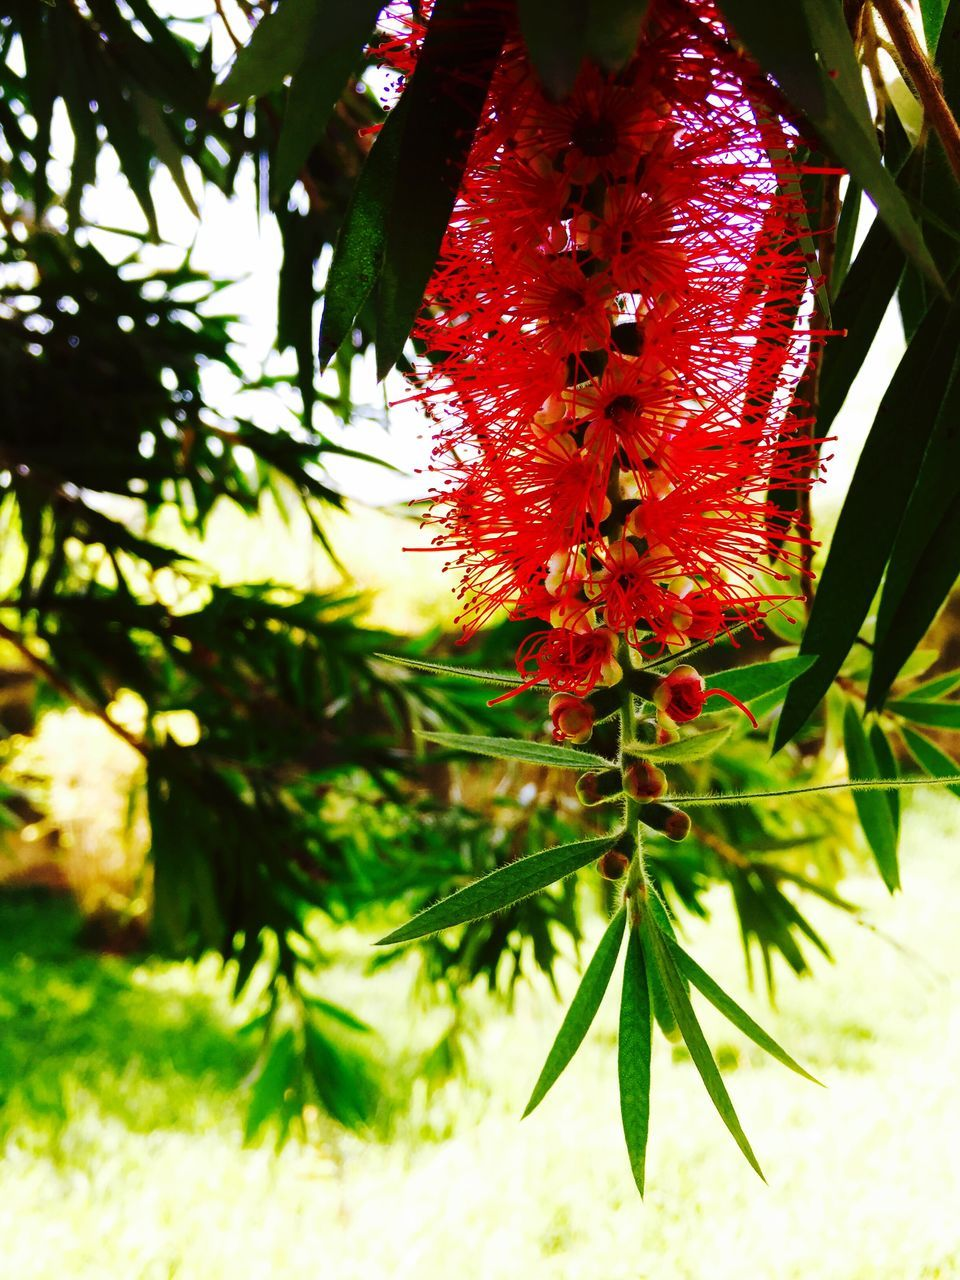 growth, tree, red, nature, beauty in nature, outdoors, plant, day, branch, green color, no people, leaf, close-up, freshness